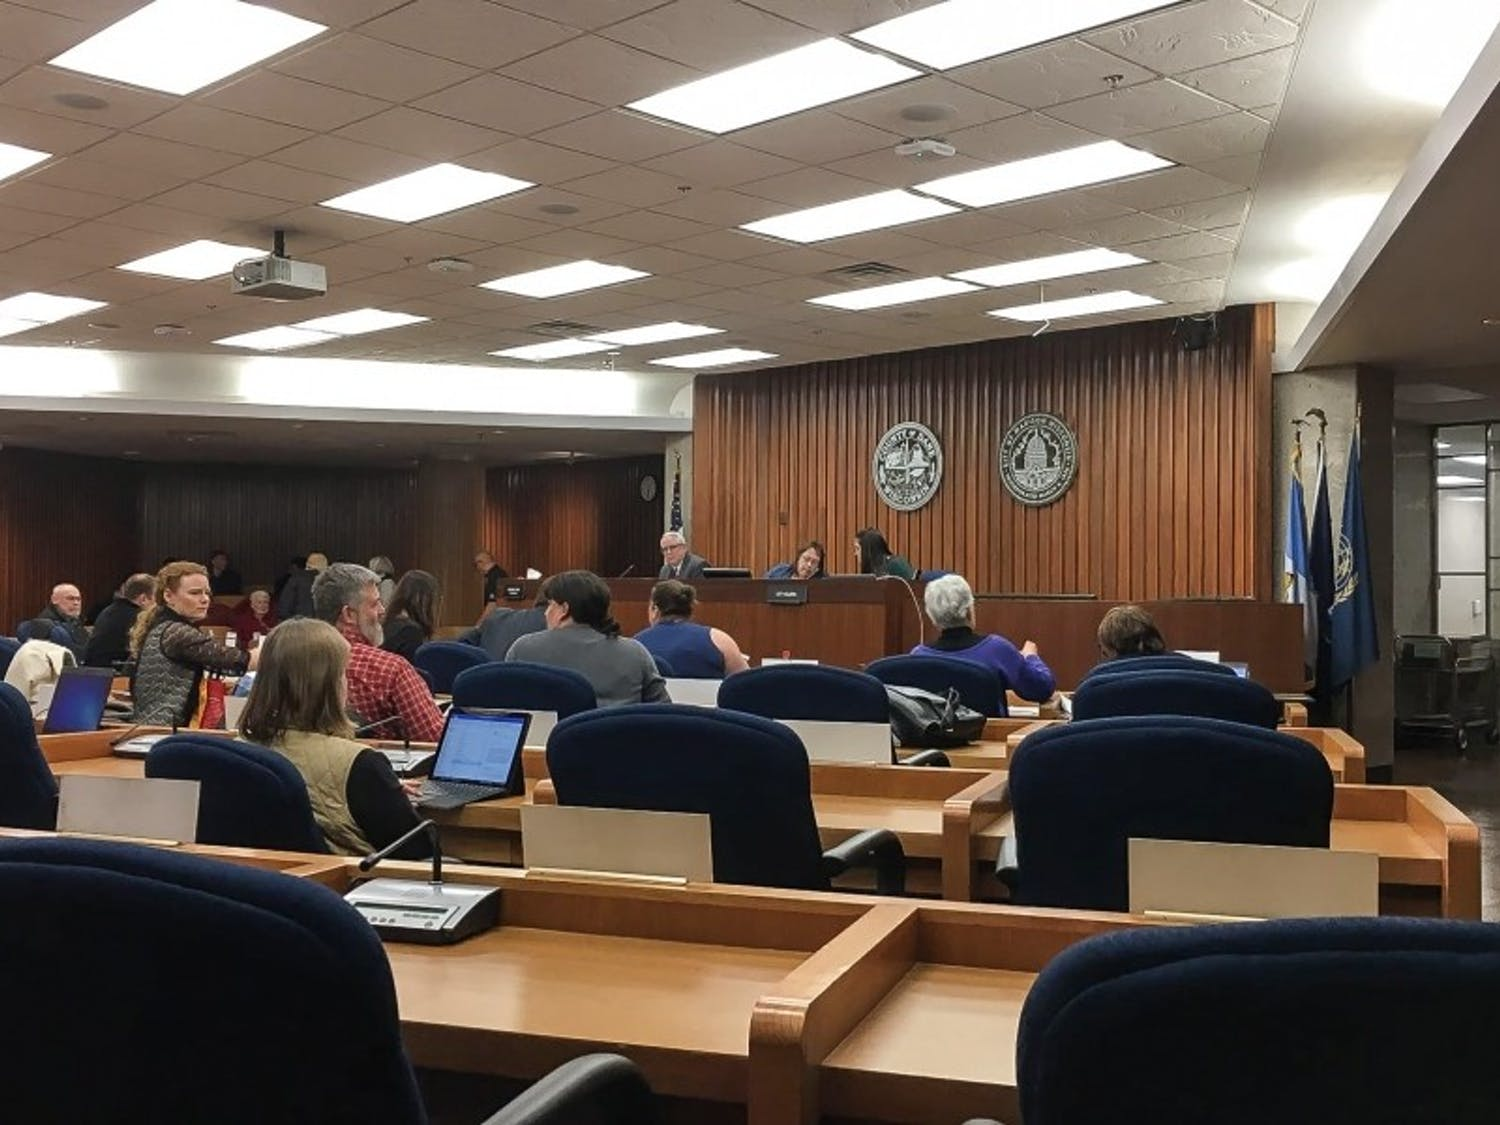 Madison's city council will vote Tuesday to adopt the 2019 capital and operating budgets proposed by Mayor Paul Soglin.